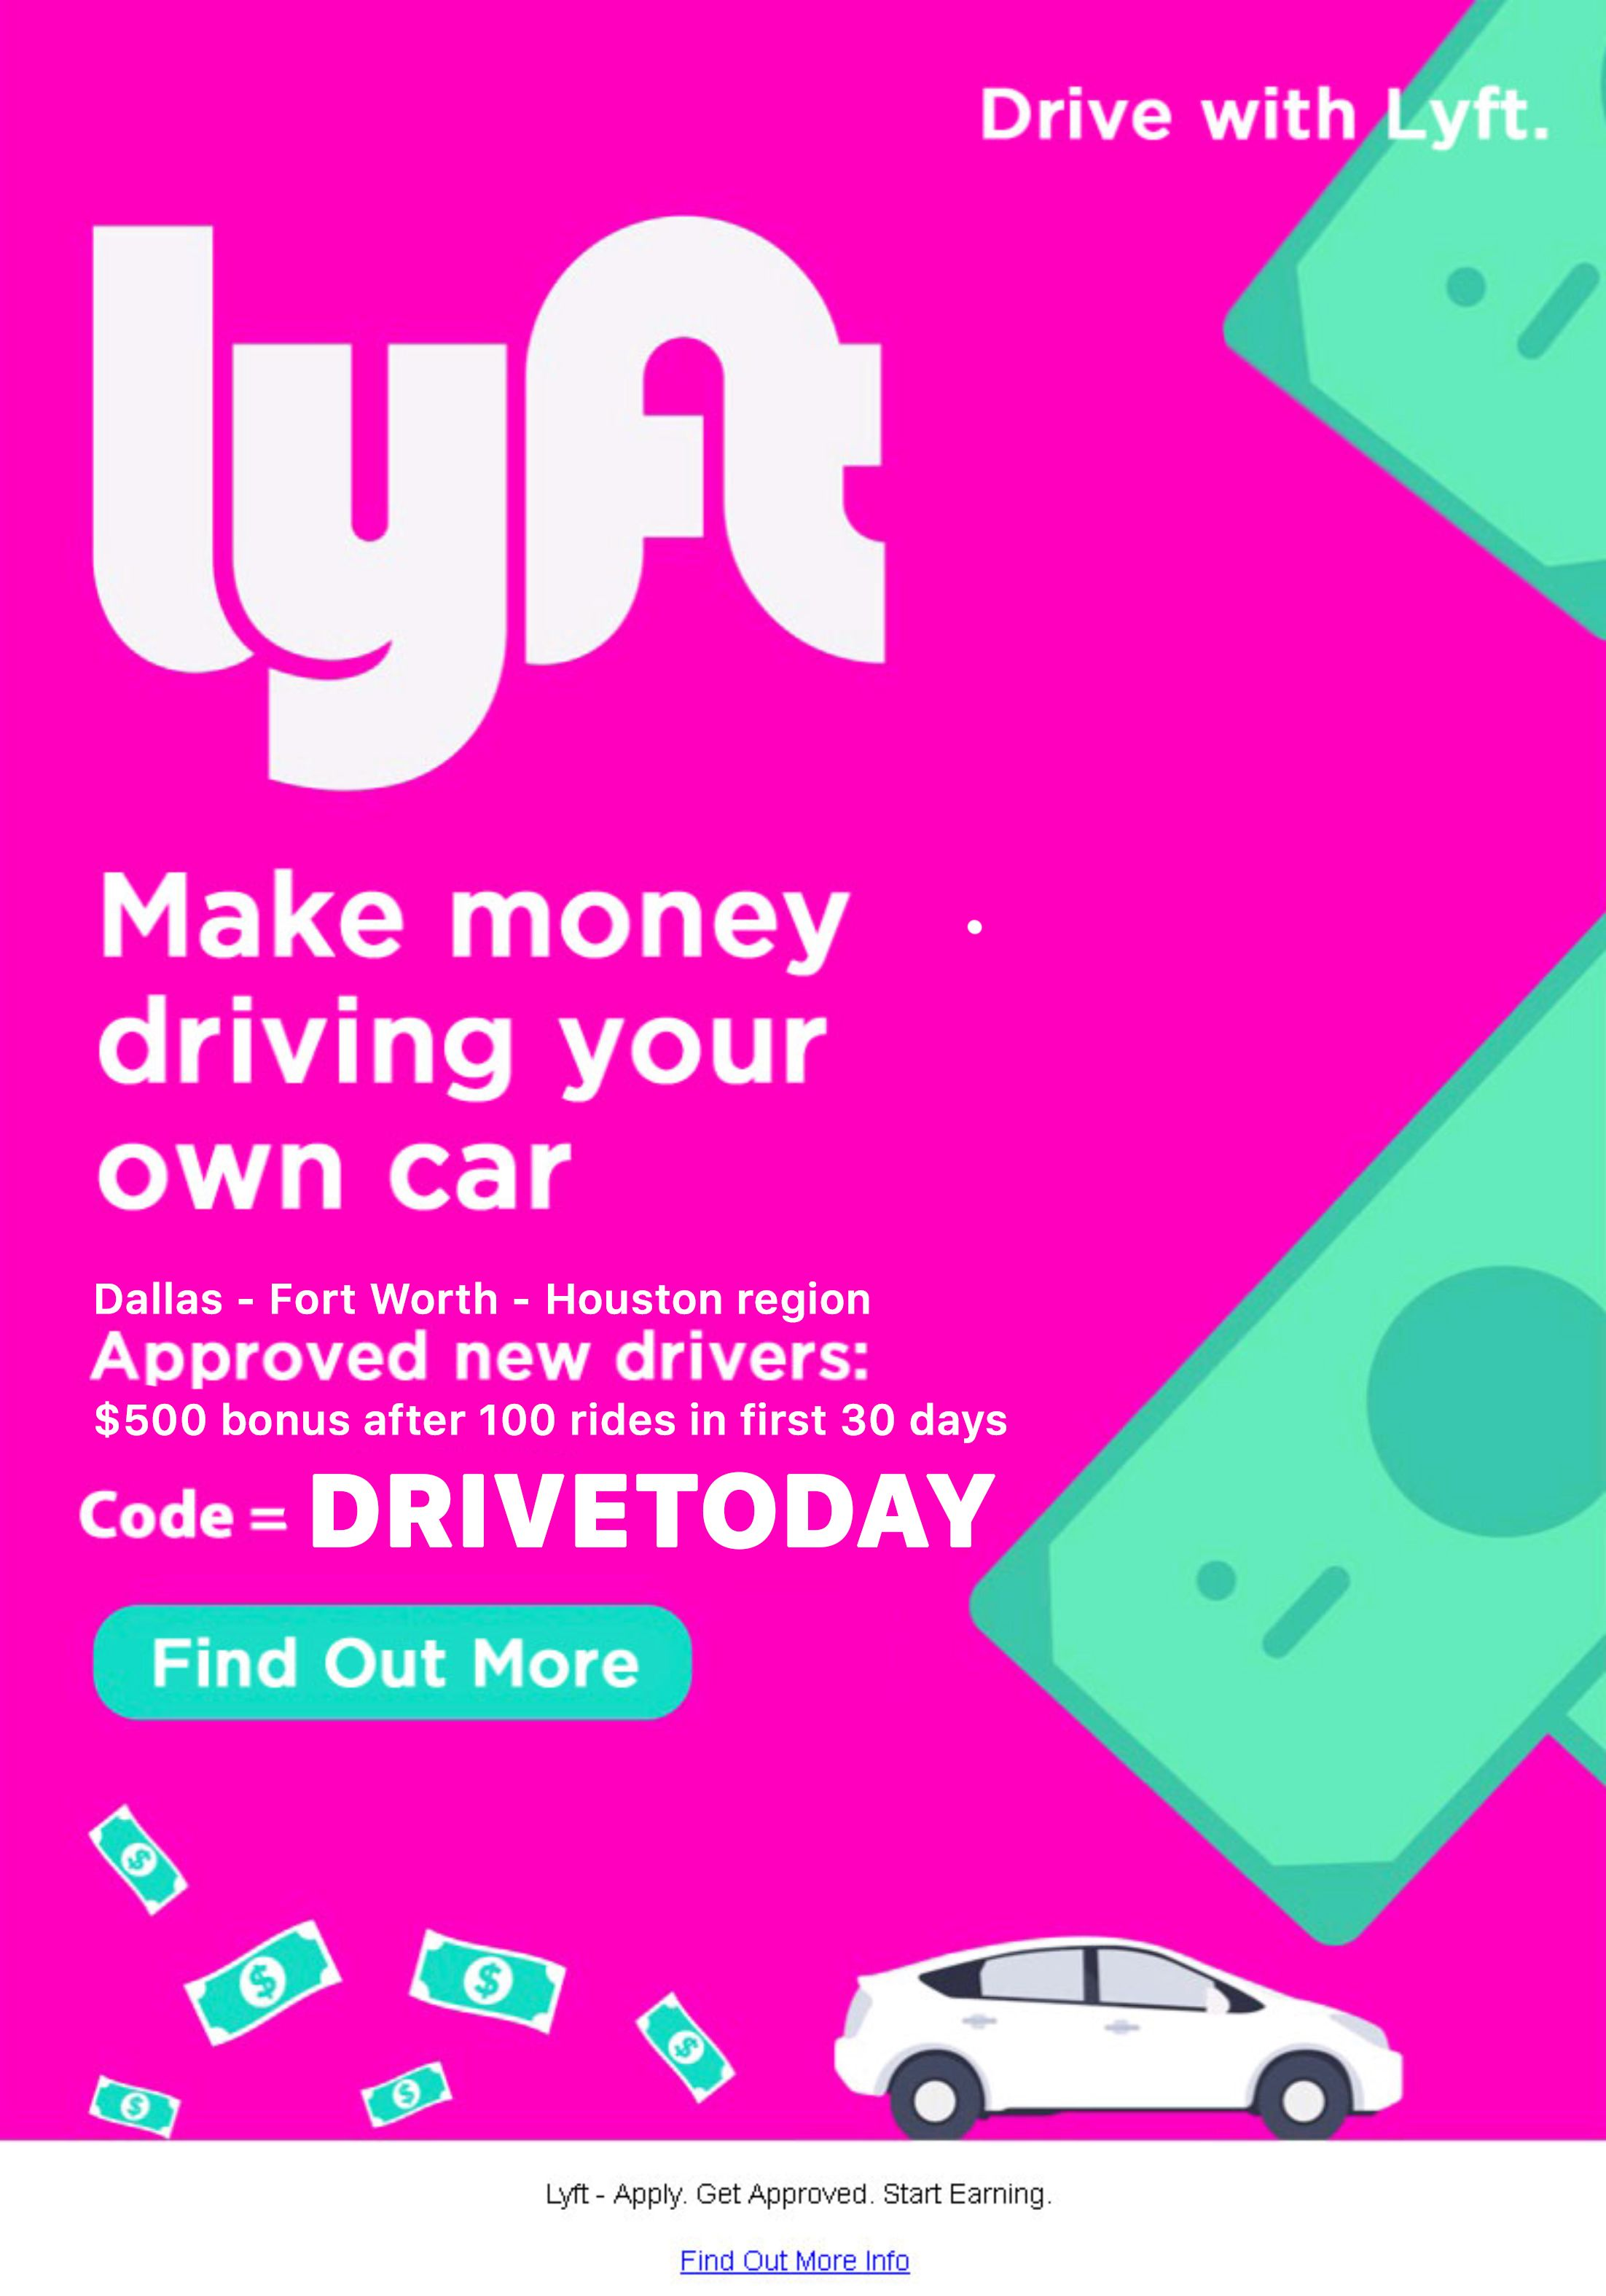 Dallas Fort Worth Houston Texas Lyft Returns To Launch With New Driver Sign Up Bonus 500 After 100 Rides In First 30 Days Code Drivetoday